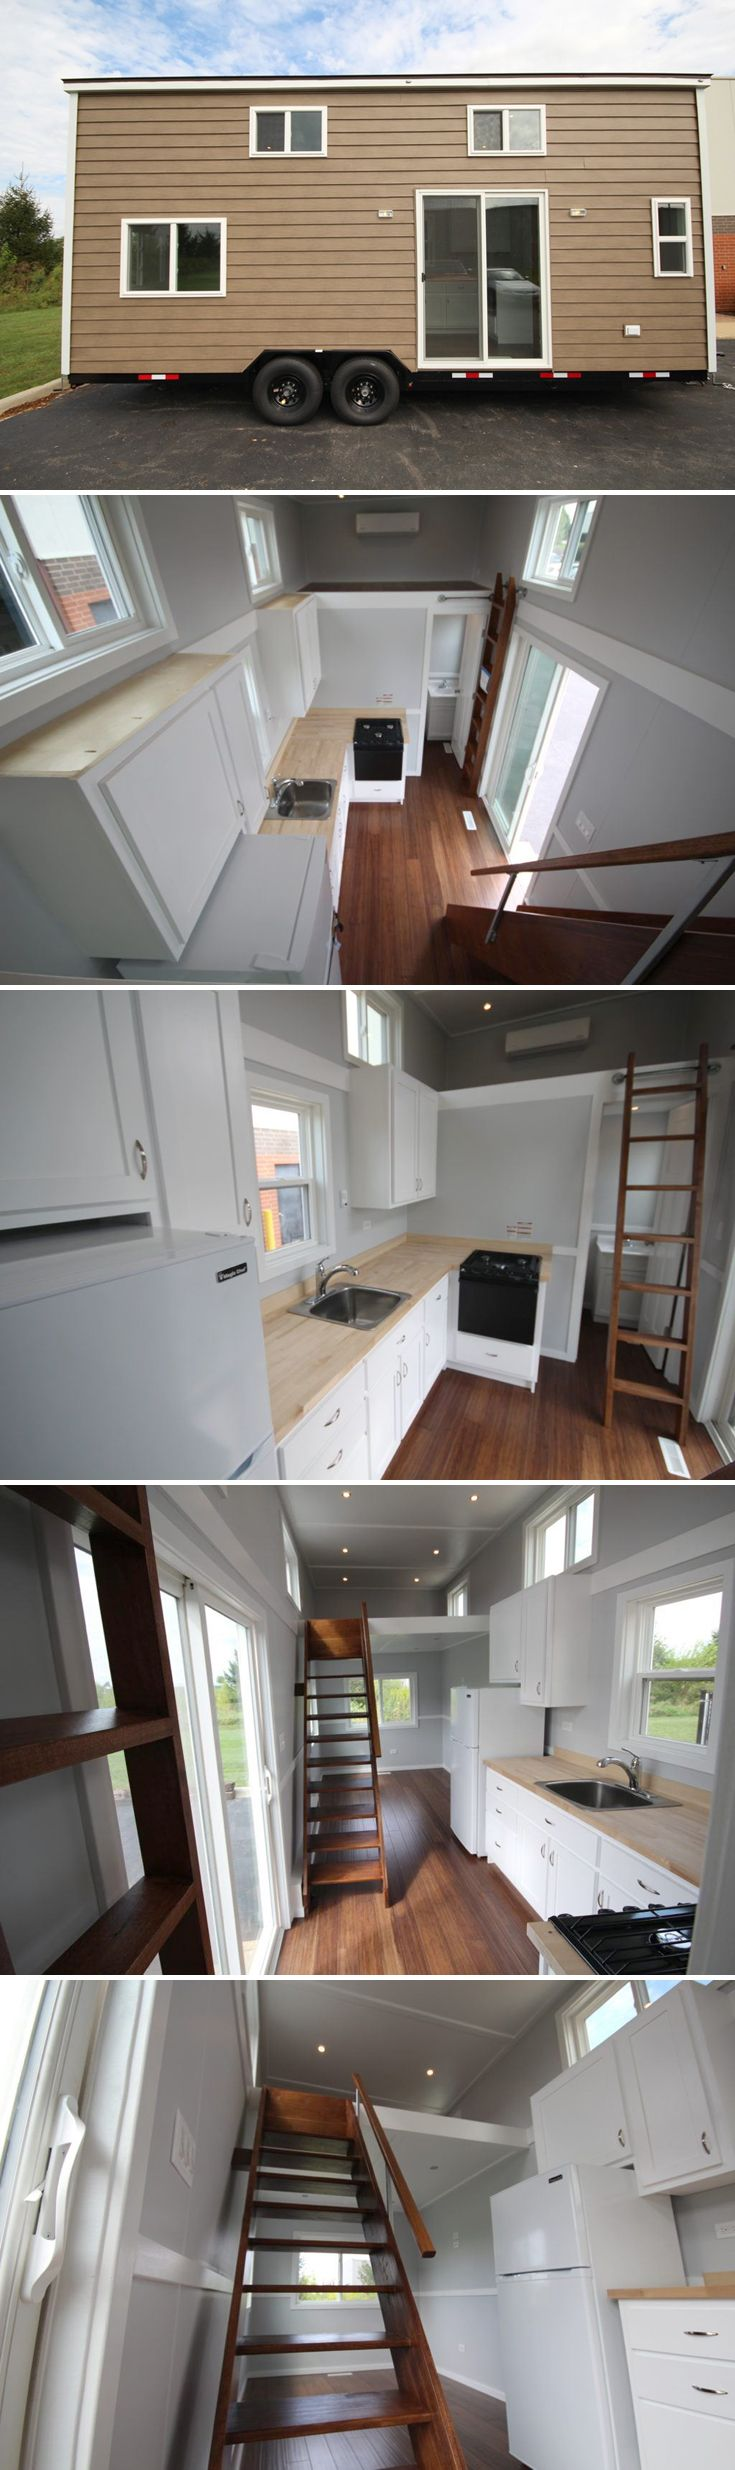 443 best Tiny House images on Pinterest | Tiny houses, Small homes ...